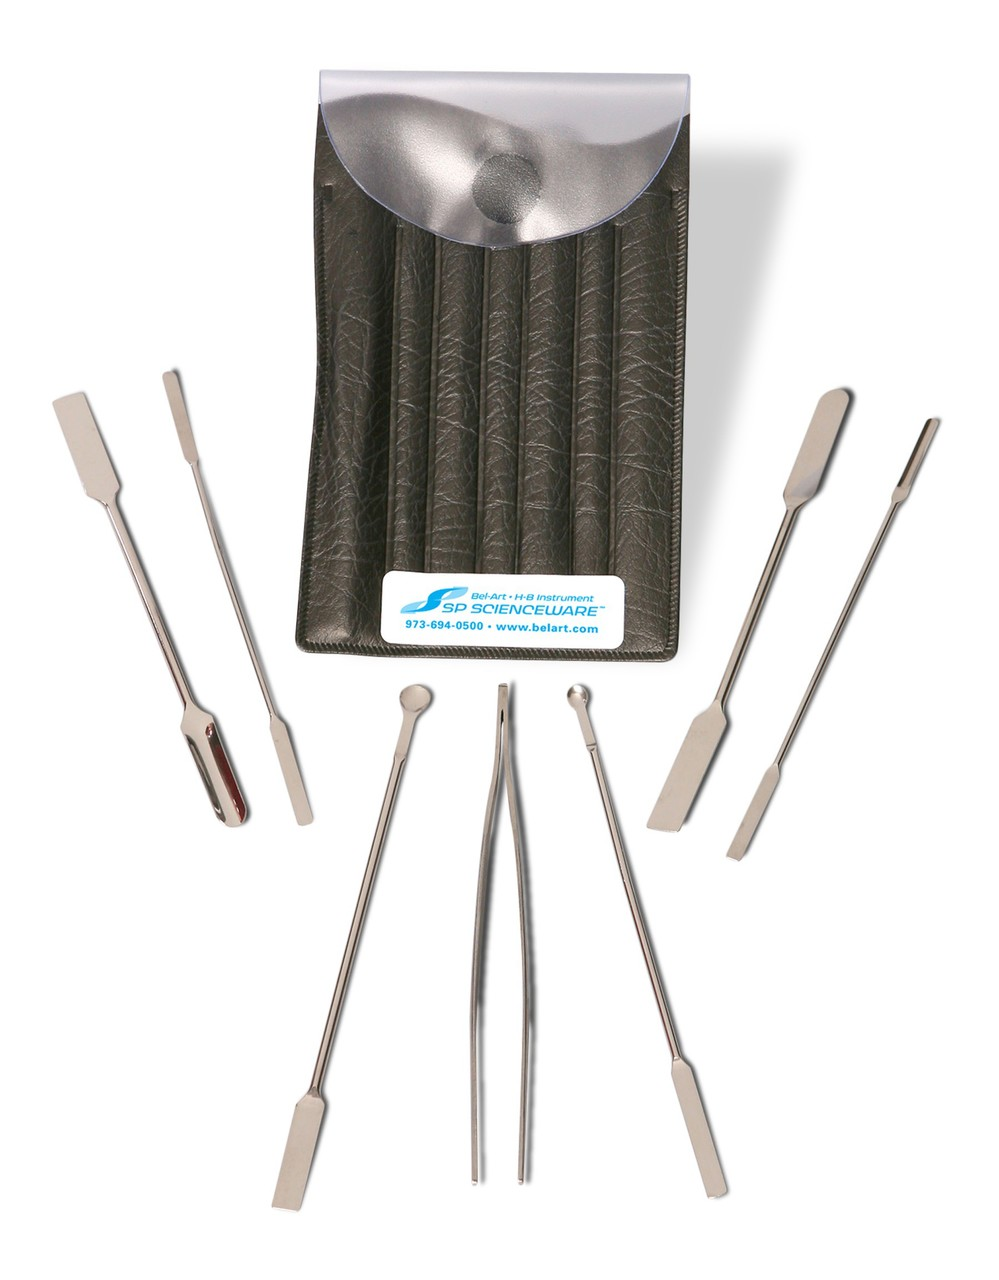 Stainless Steel Micro Spoon and Spatula Weighing Set (7 pieces)